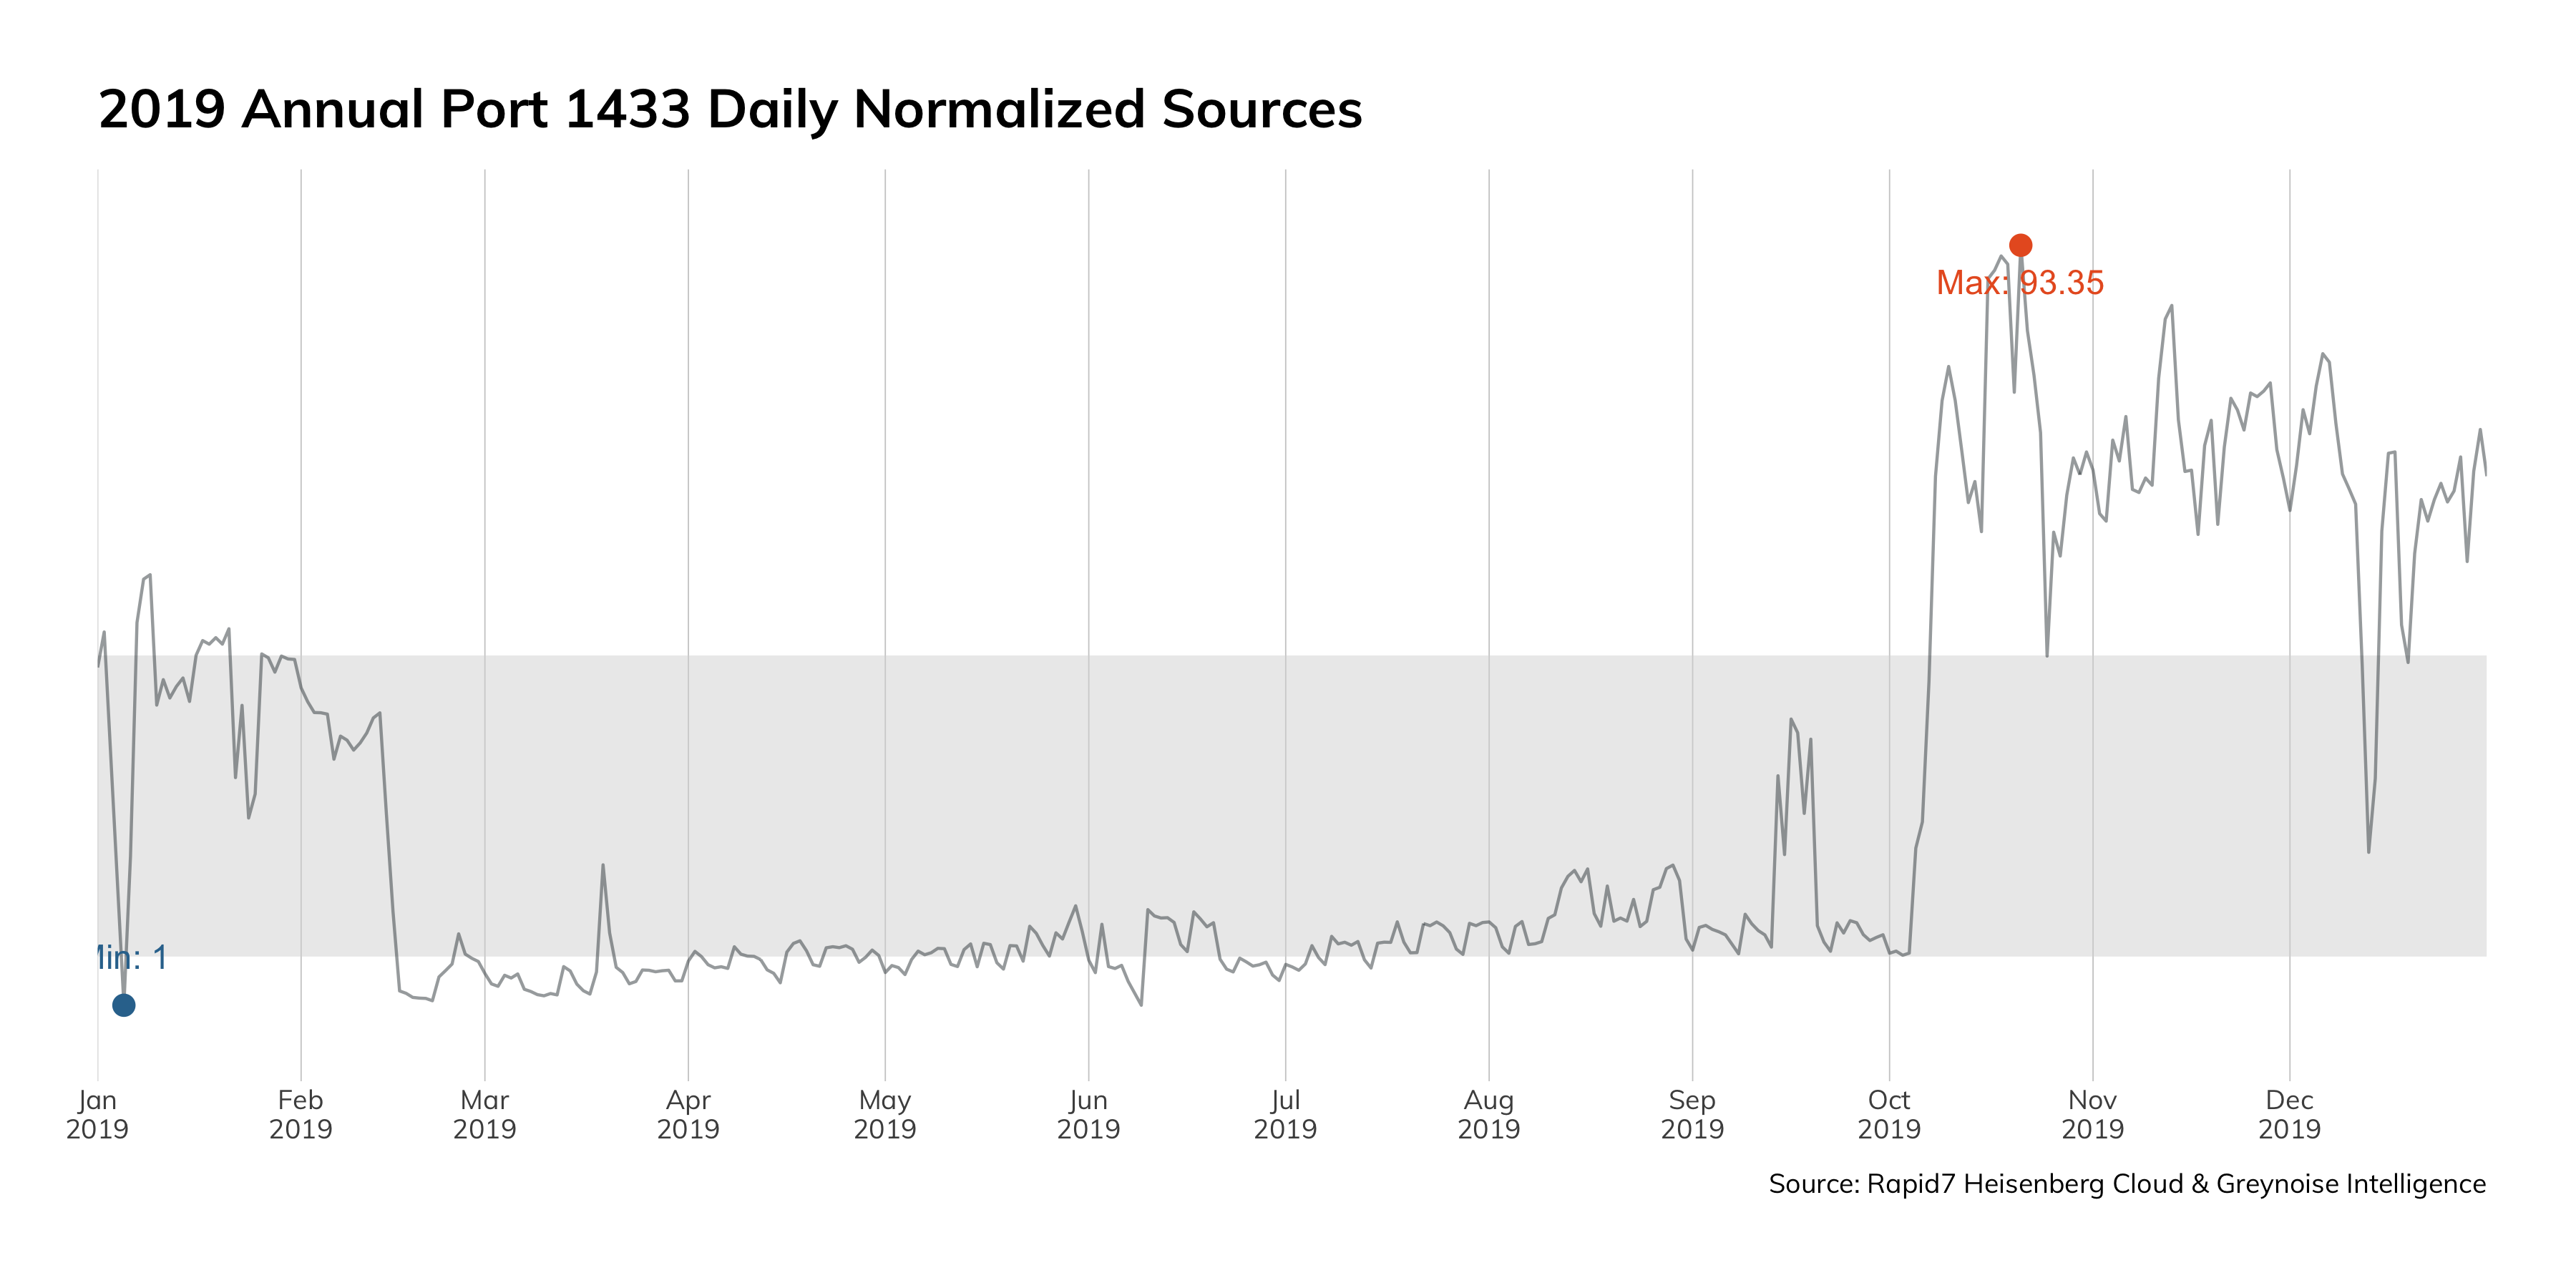 Figure 7: 2019 Annual Port 1433 Daily Normalized Sources